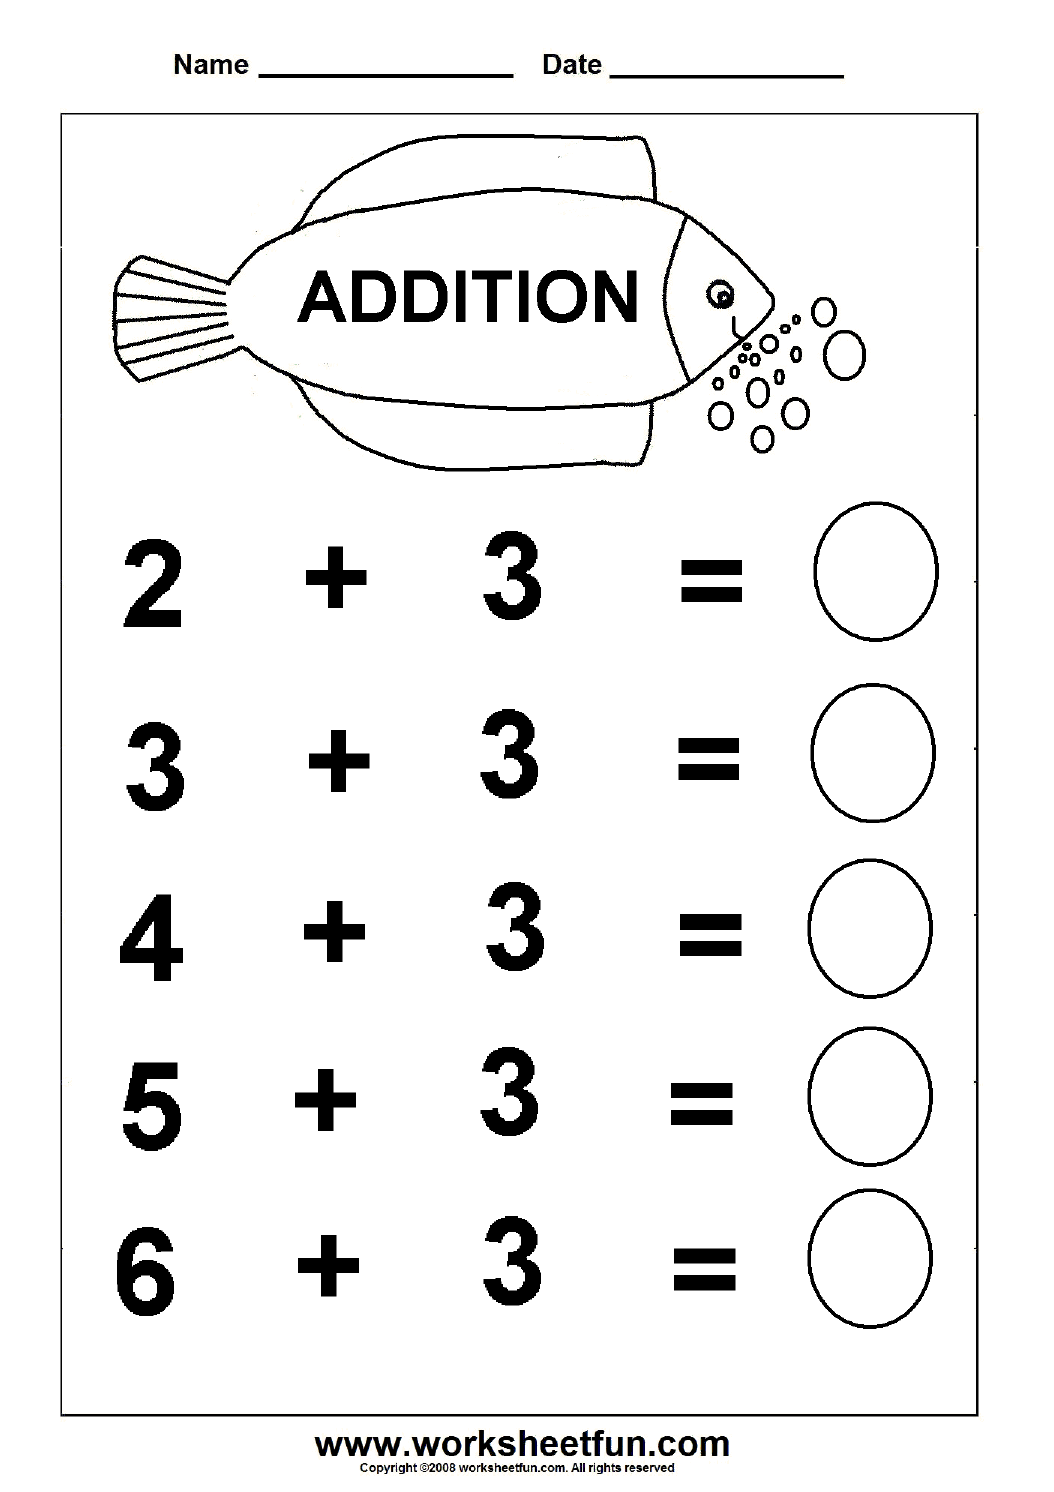 Worksheet Beginner Math Worksheets beginner addition 6 kindergarten worksheets free first grade worksheets